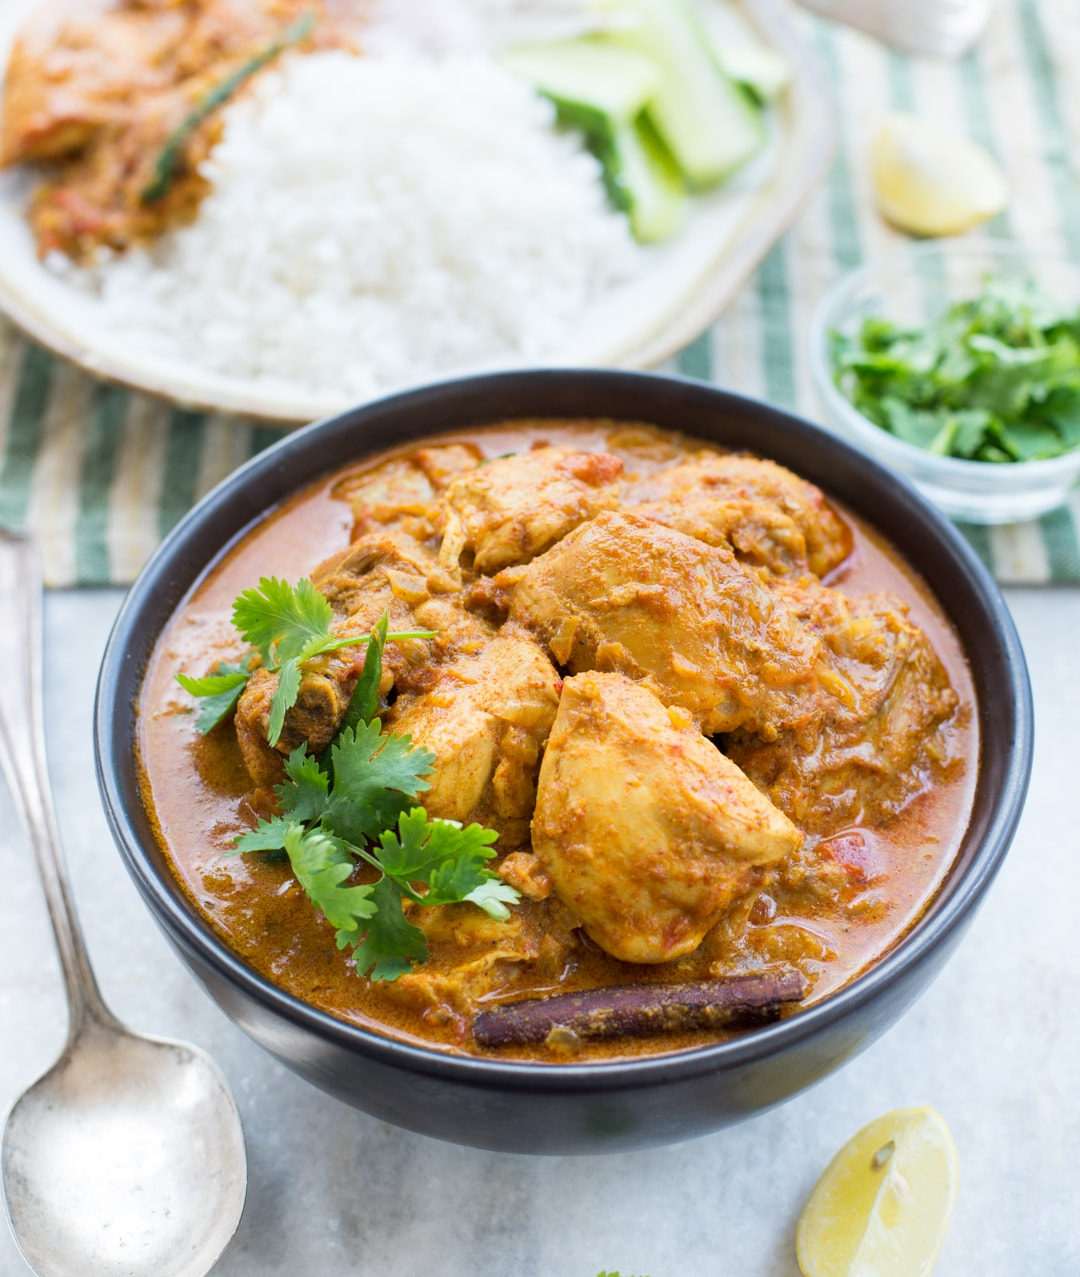 Slow Cooker Coconut Chicken Curry with amazing flavours is rich and creamy. Easy Indian Chicken Curry is made with freshly ground spices for best flavours.